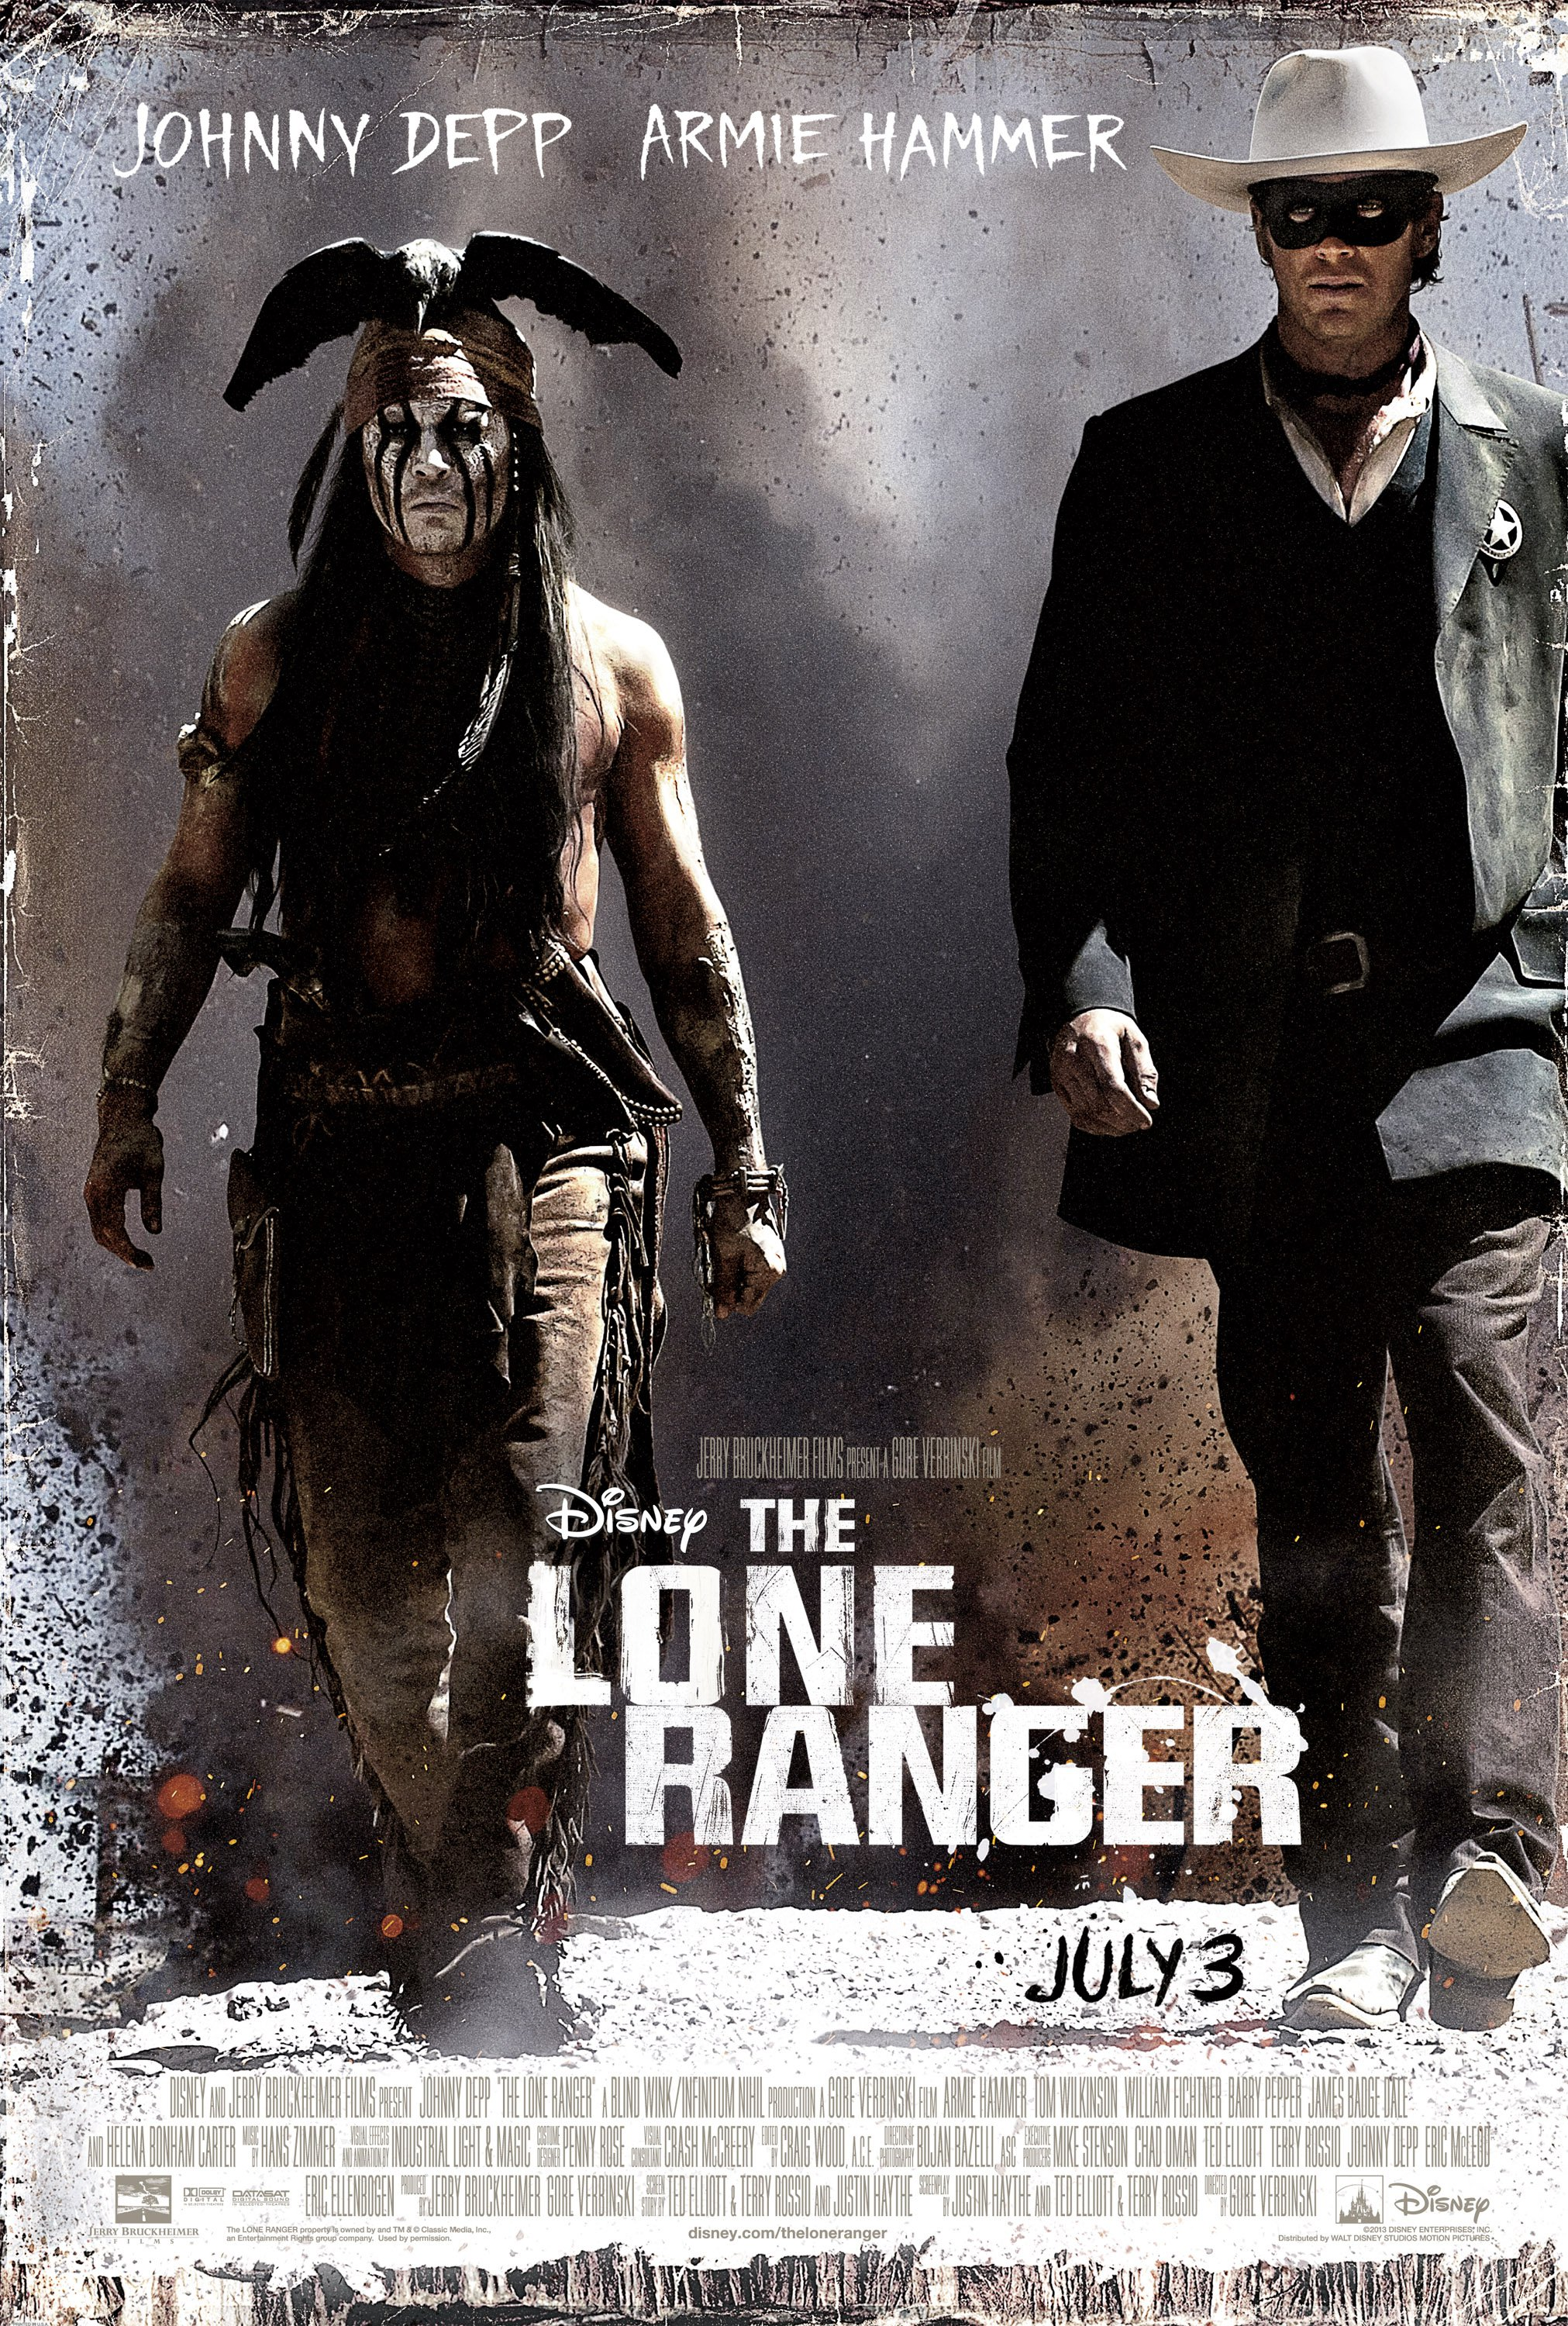 The Lone Ranger & The Lone Ranger | Disney Wiki | FANDOM powered by Wikia